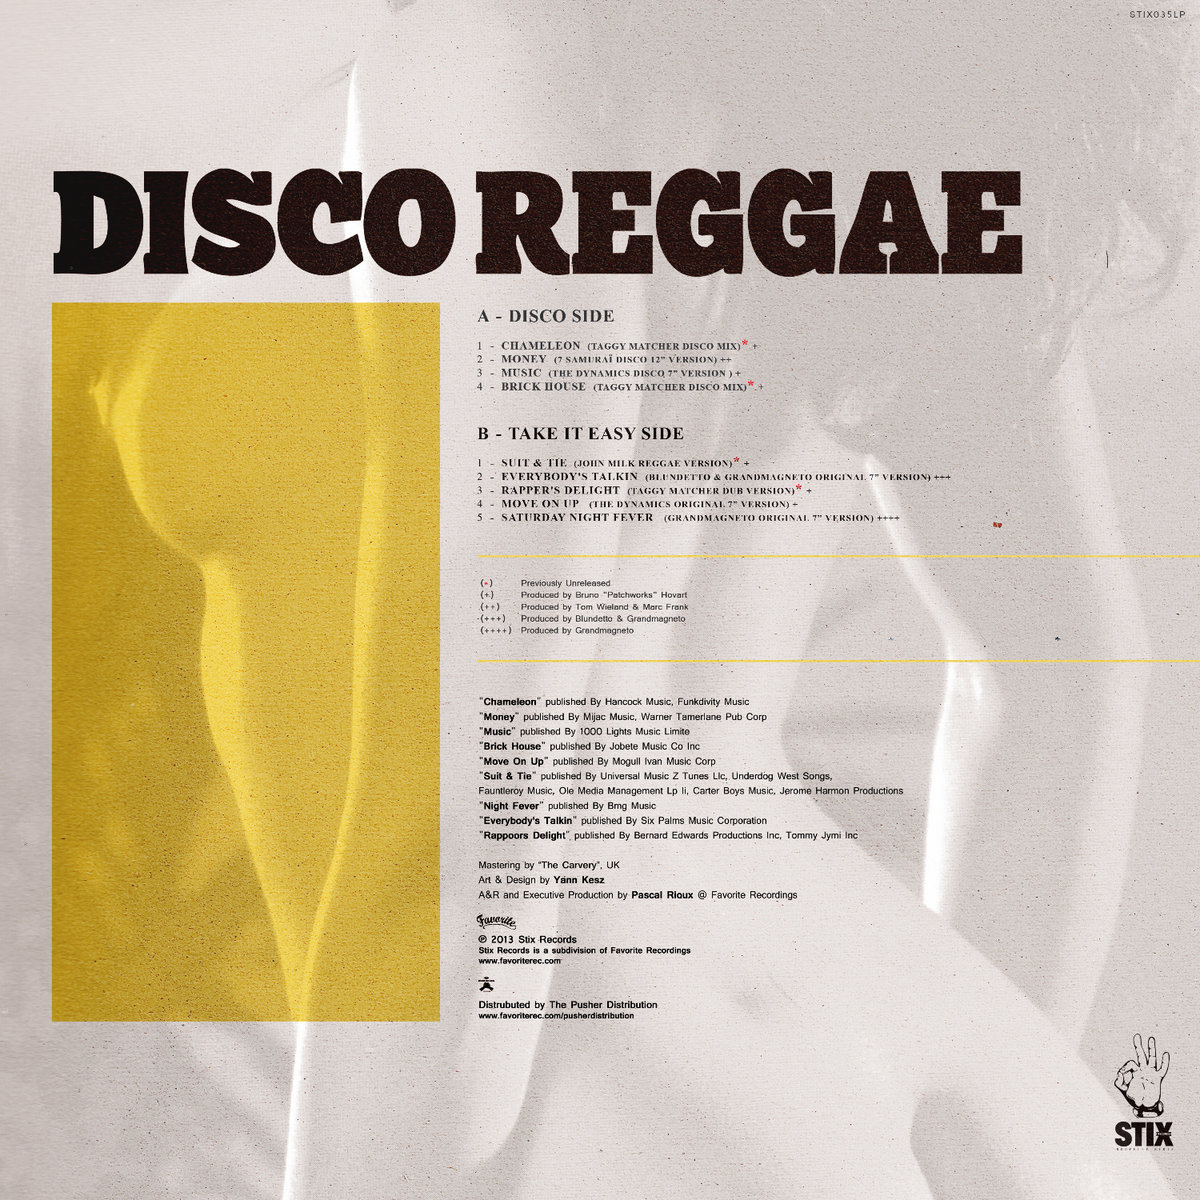 Disco Reggae | Favorite Recordings